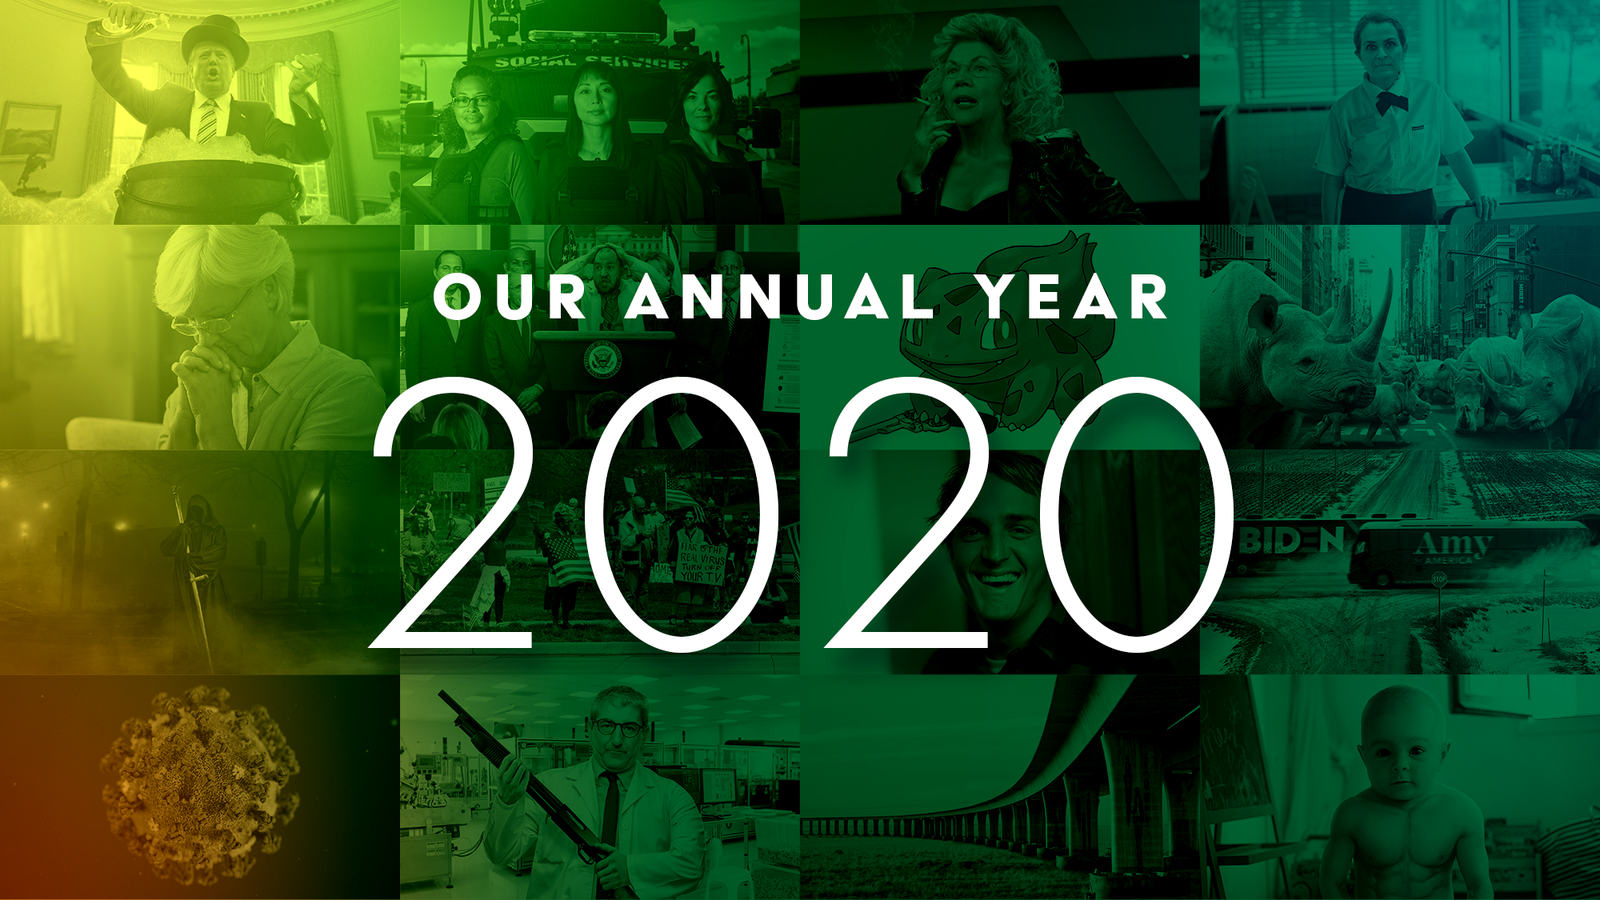 Our Annual Year 2020